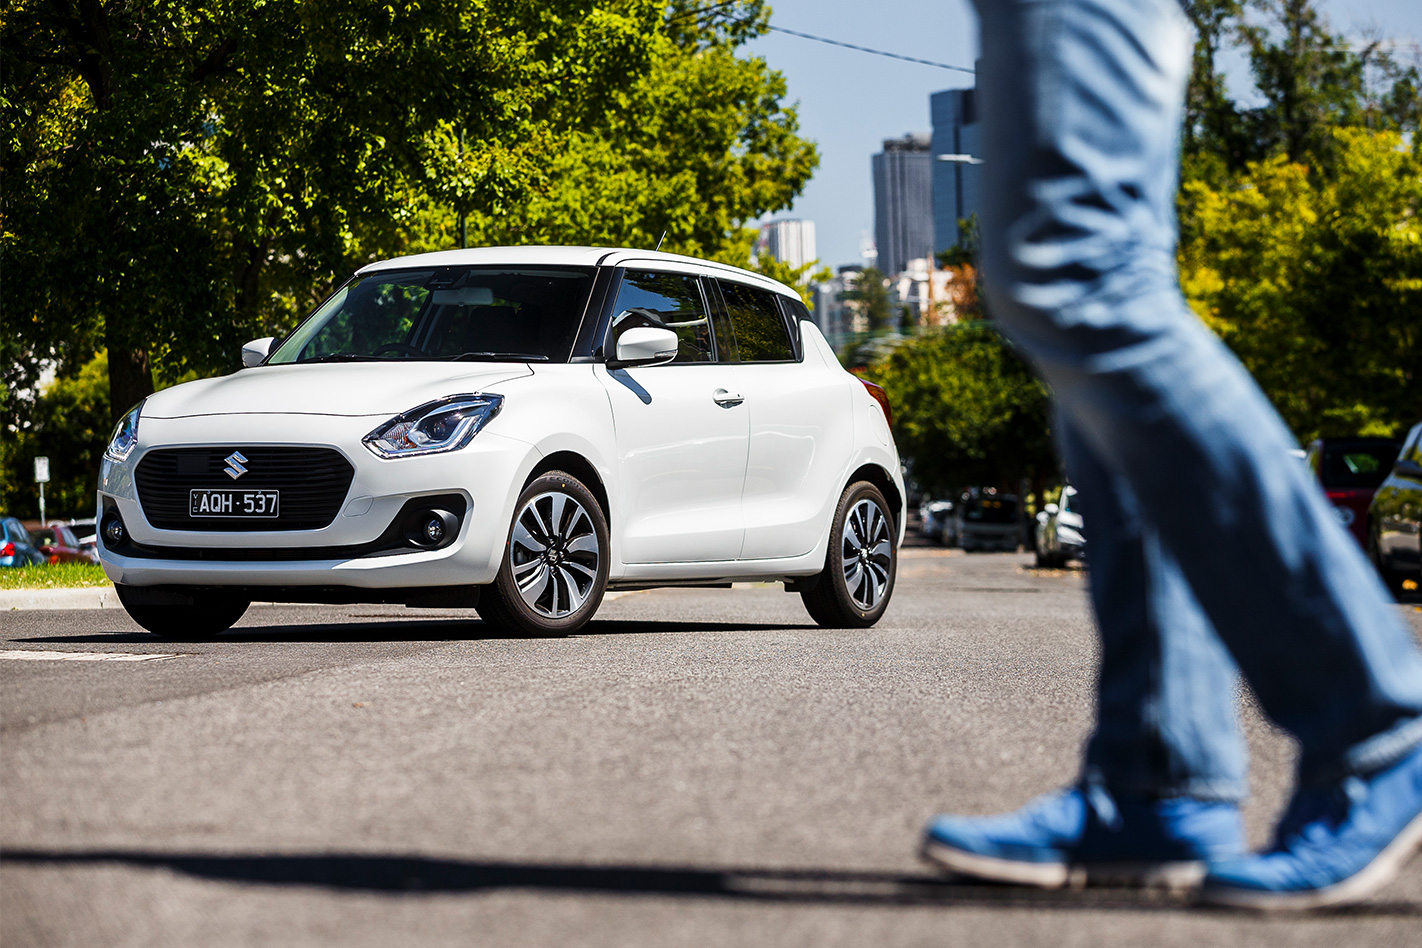 2018 Suzuki Swift GLX Turbo long-term review, part two